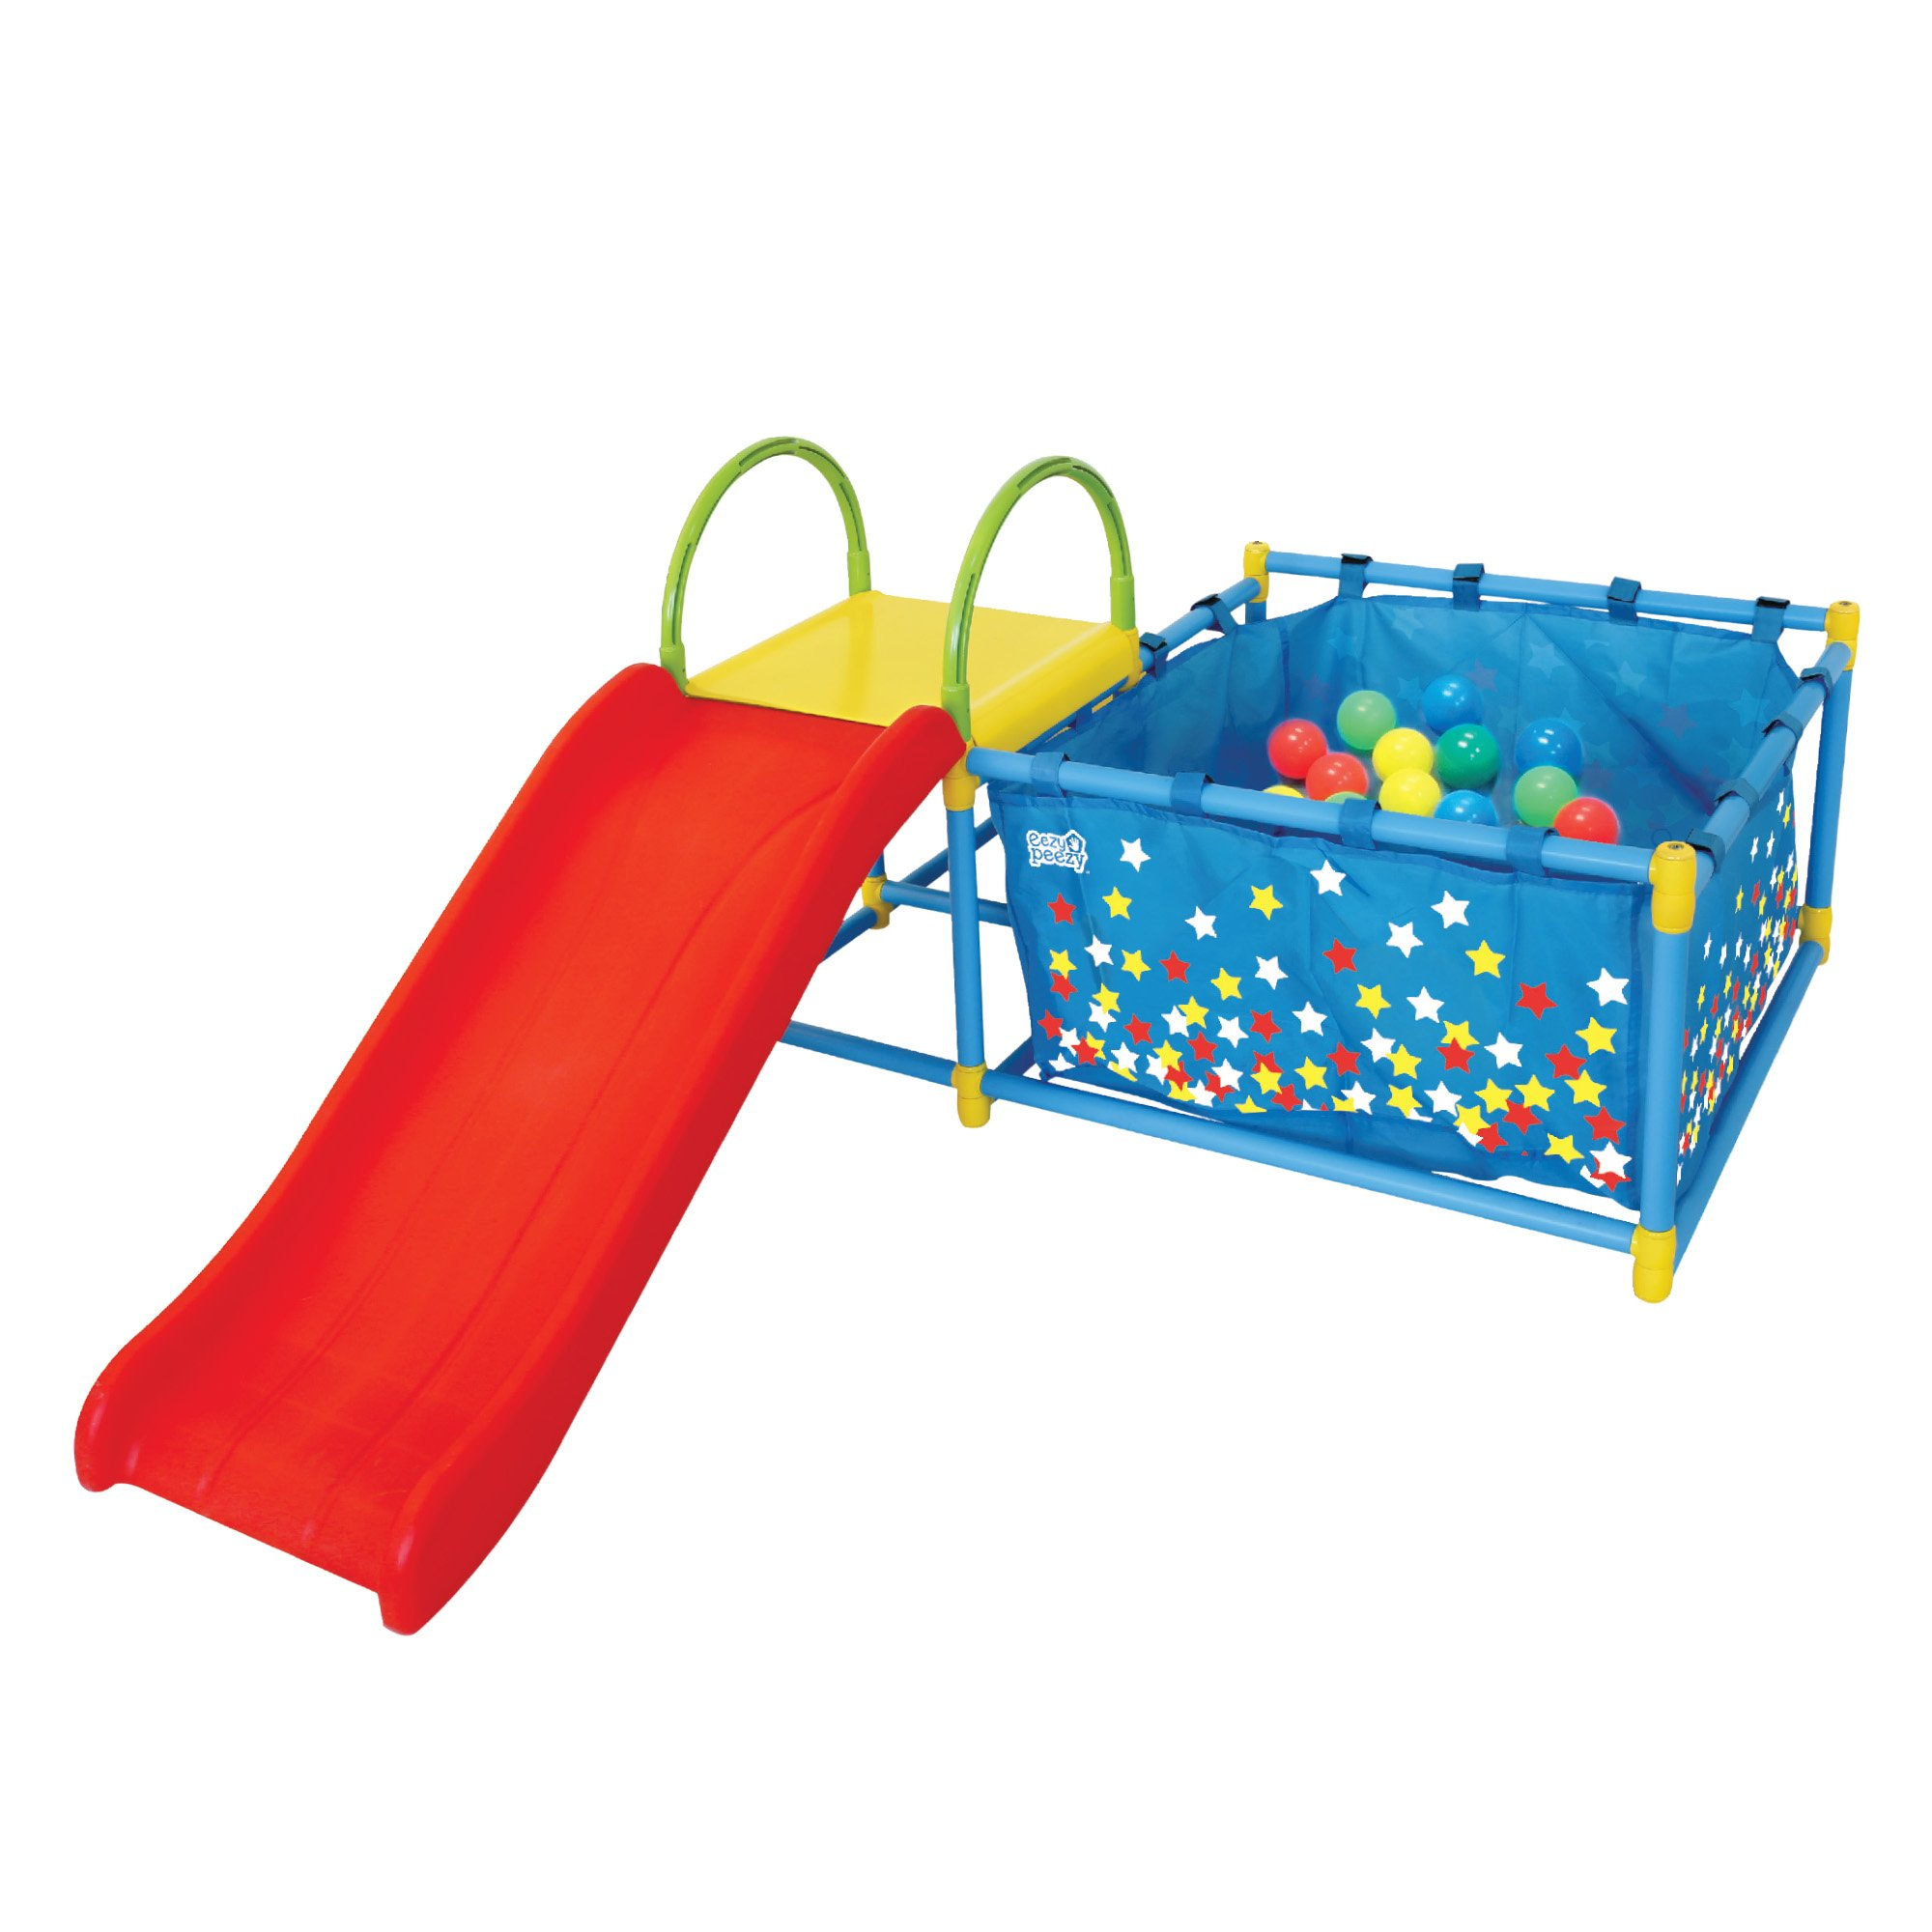 Eezy Peezy Active Play 3 in 1 Jungle Gym Foldable PlaySet - Includes Slide, Ball Pit, & Toss Target with 50 Colorful Balls by Eezy Peezy